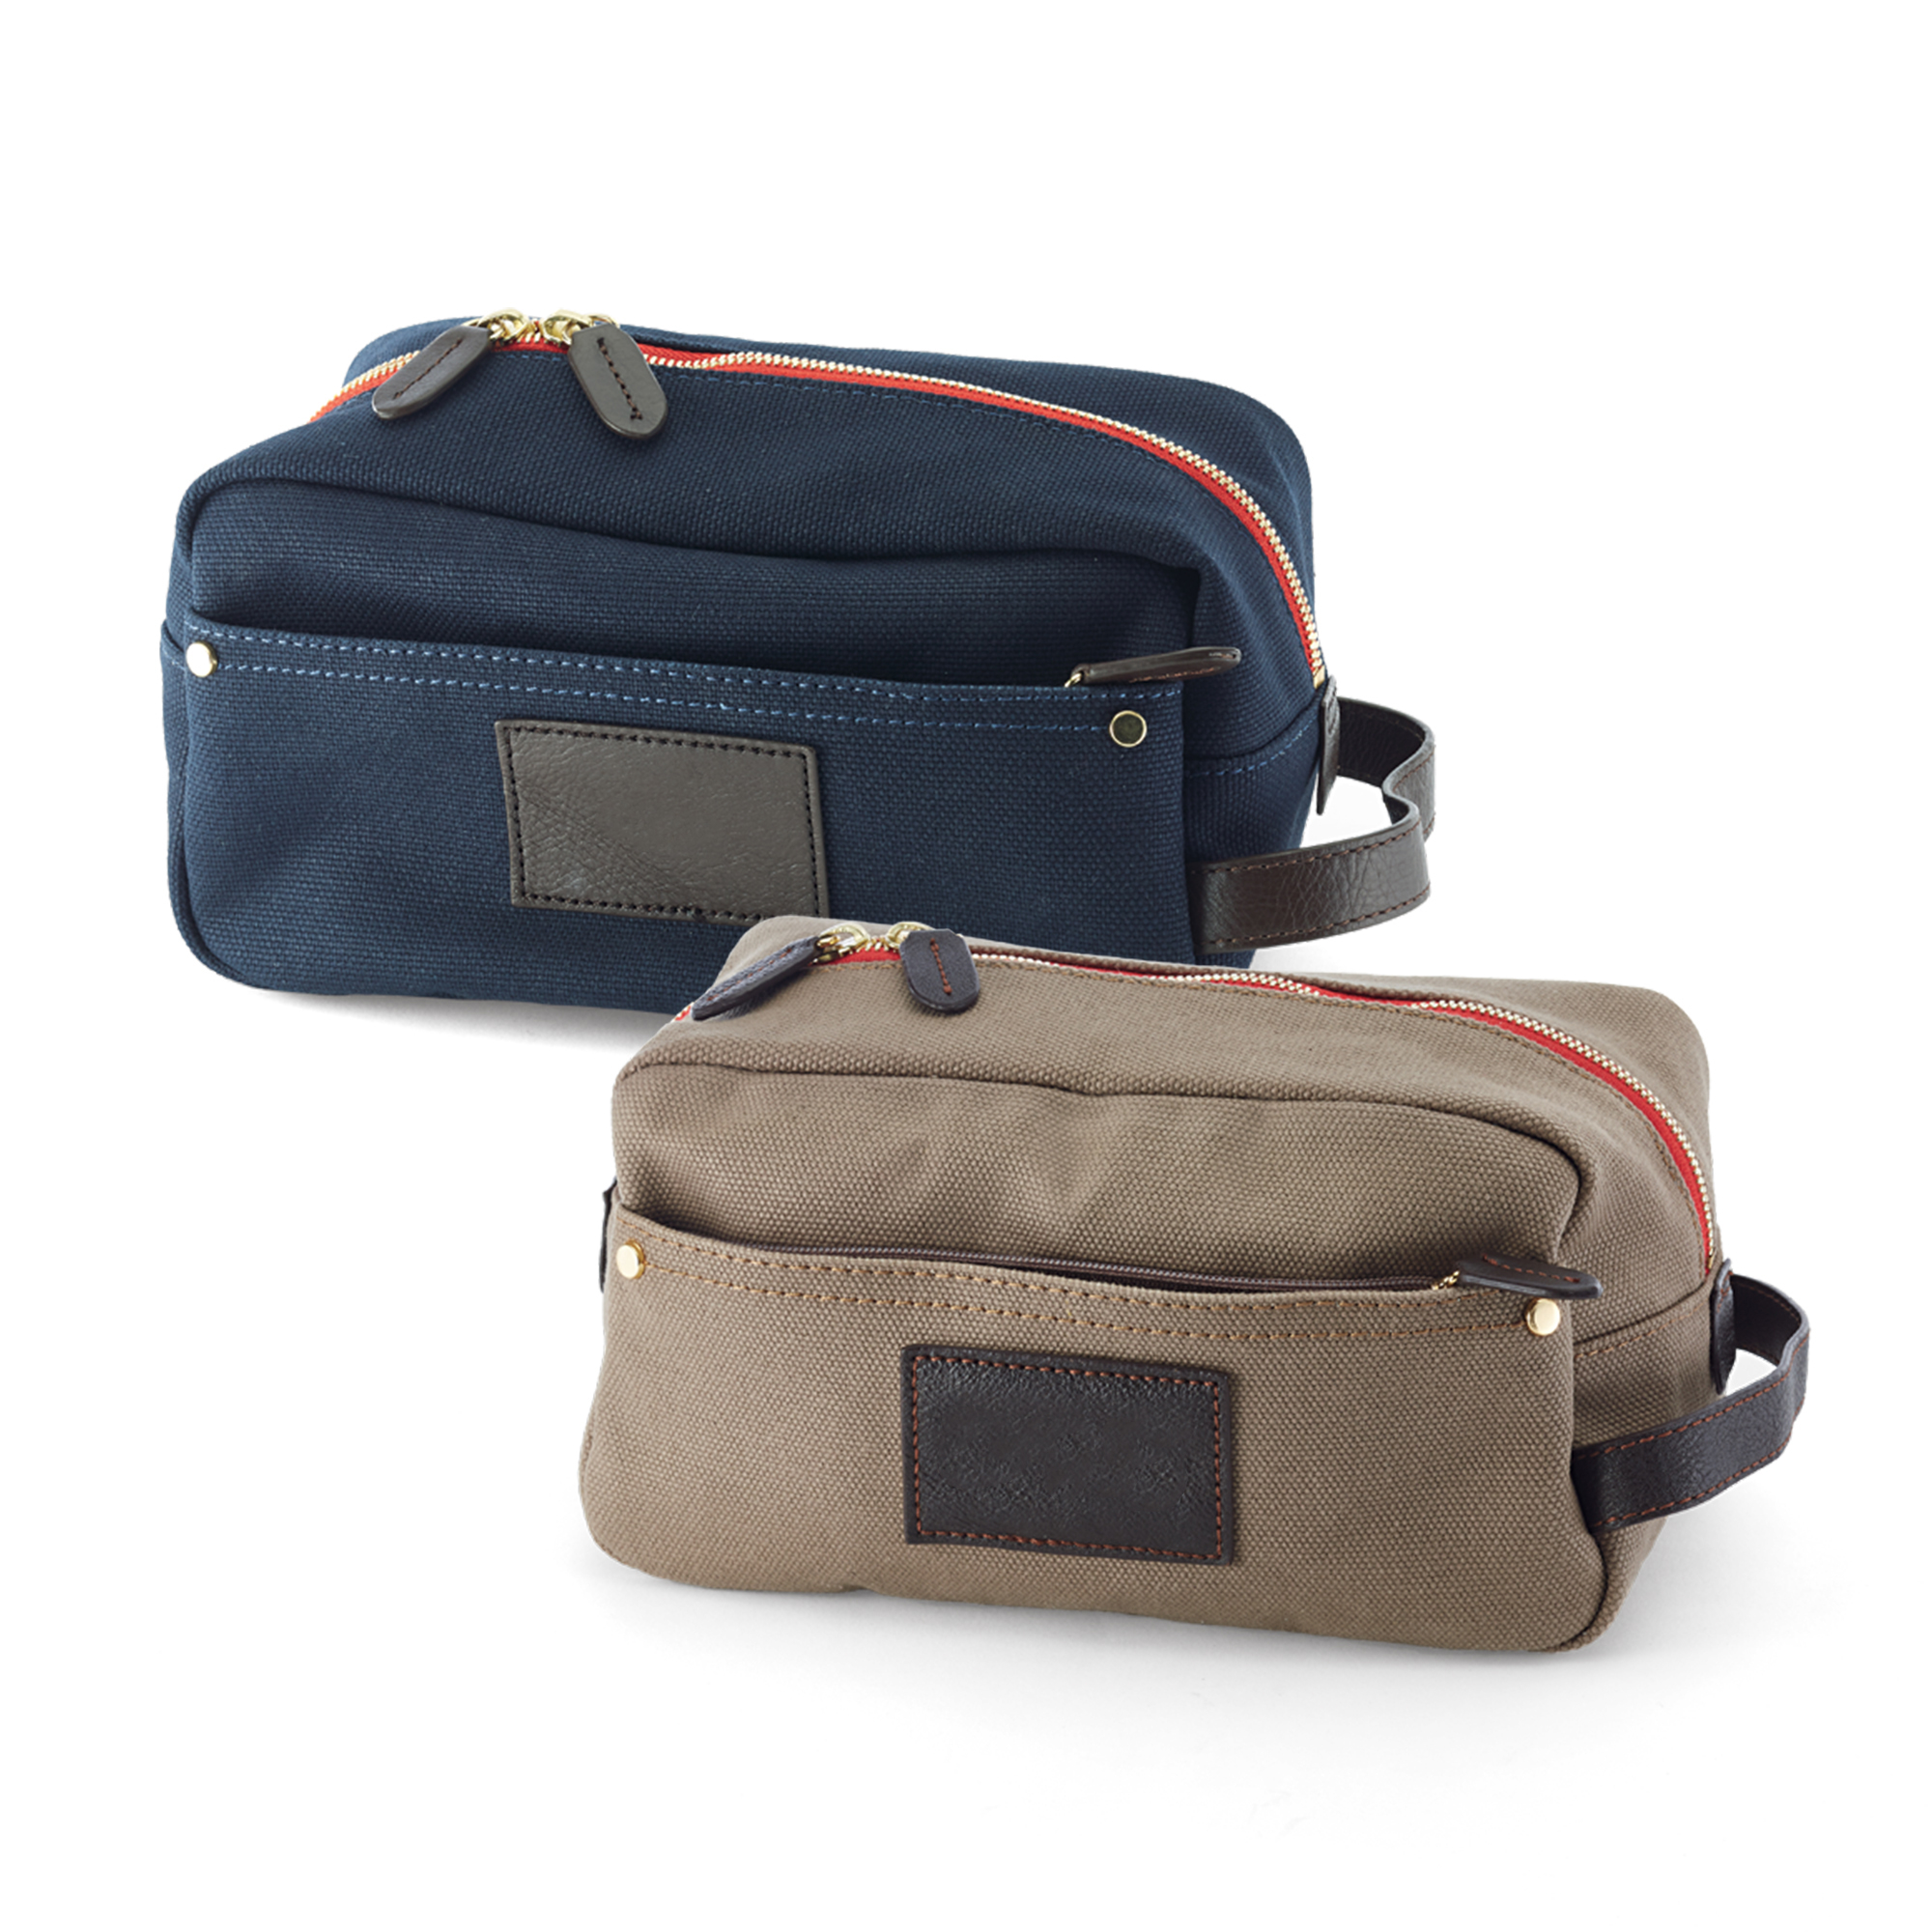 Charlie Dopp Toiletry Bag